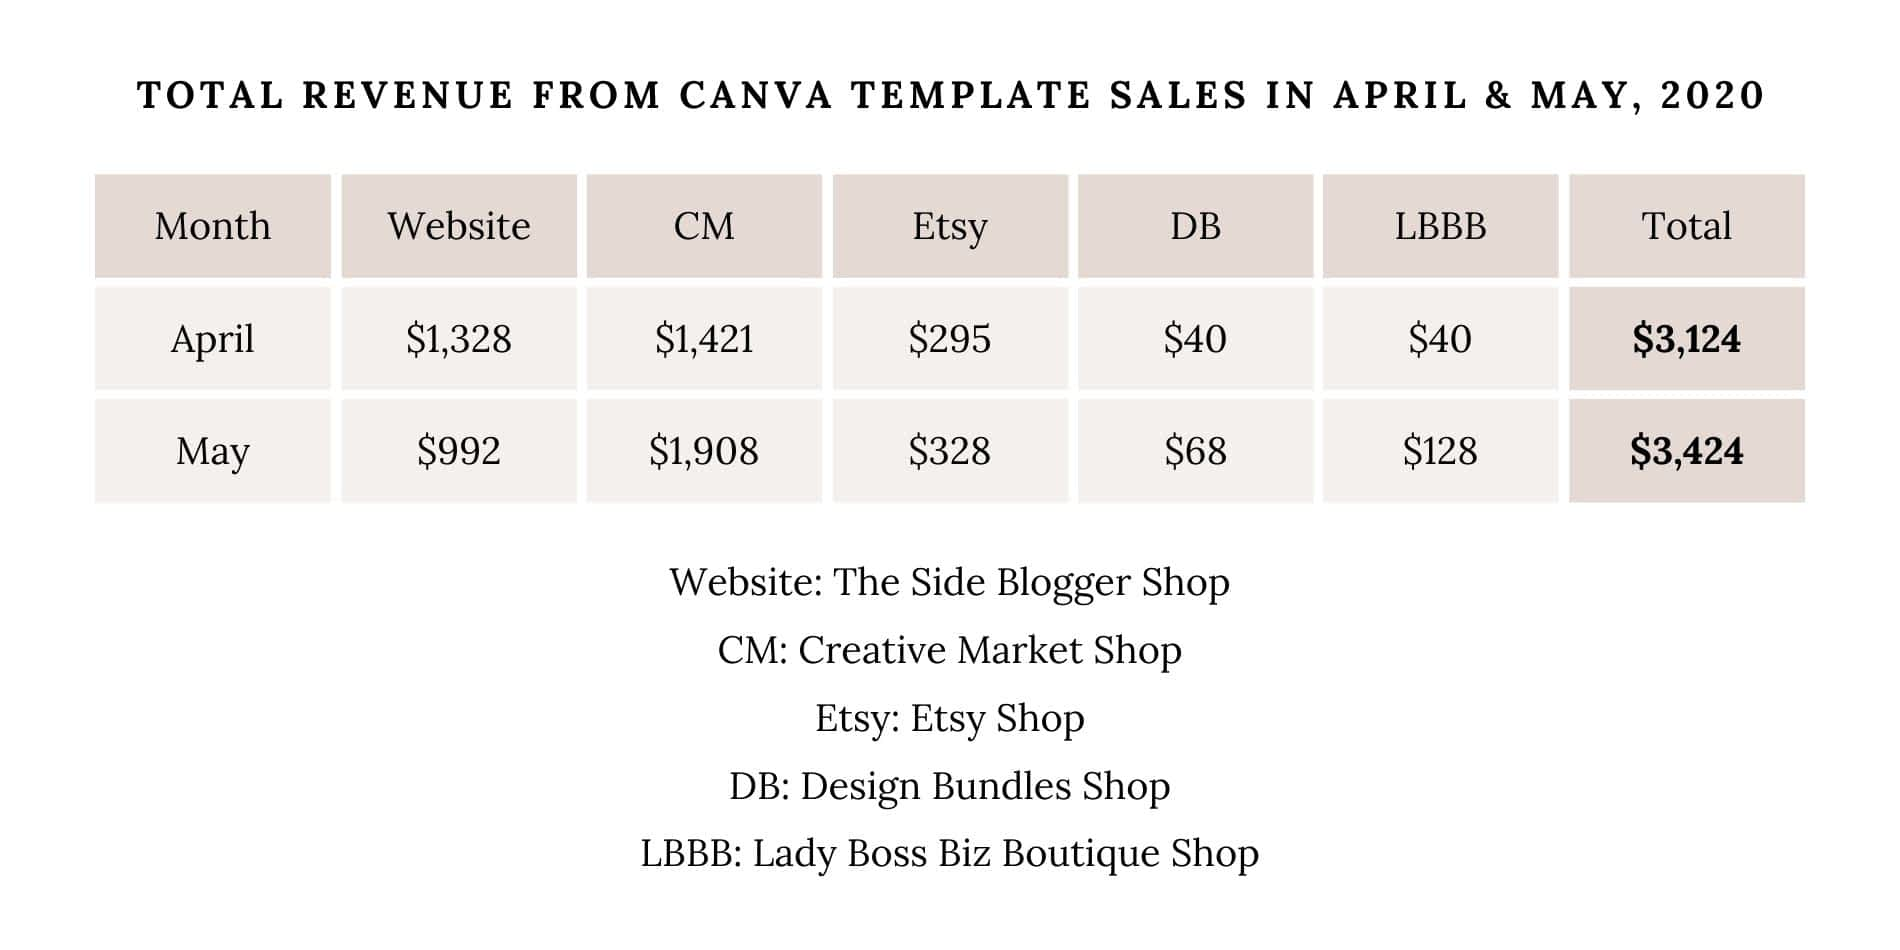 Revenue from Canva Template Sales